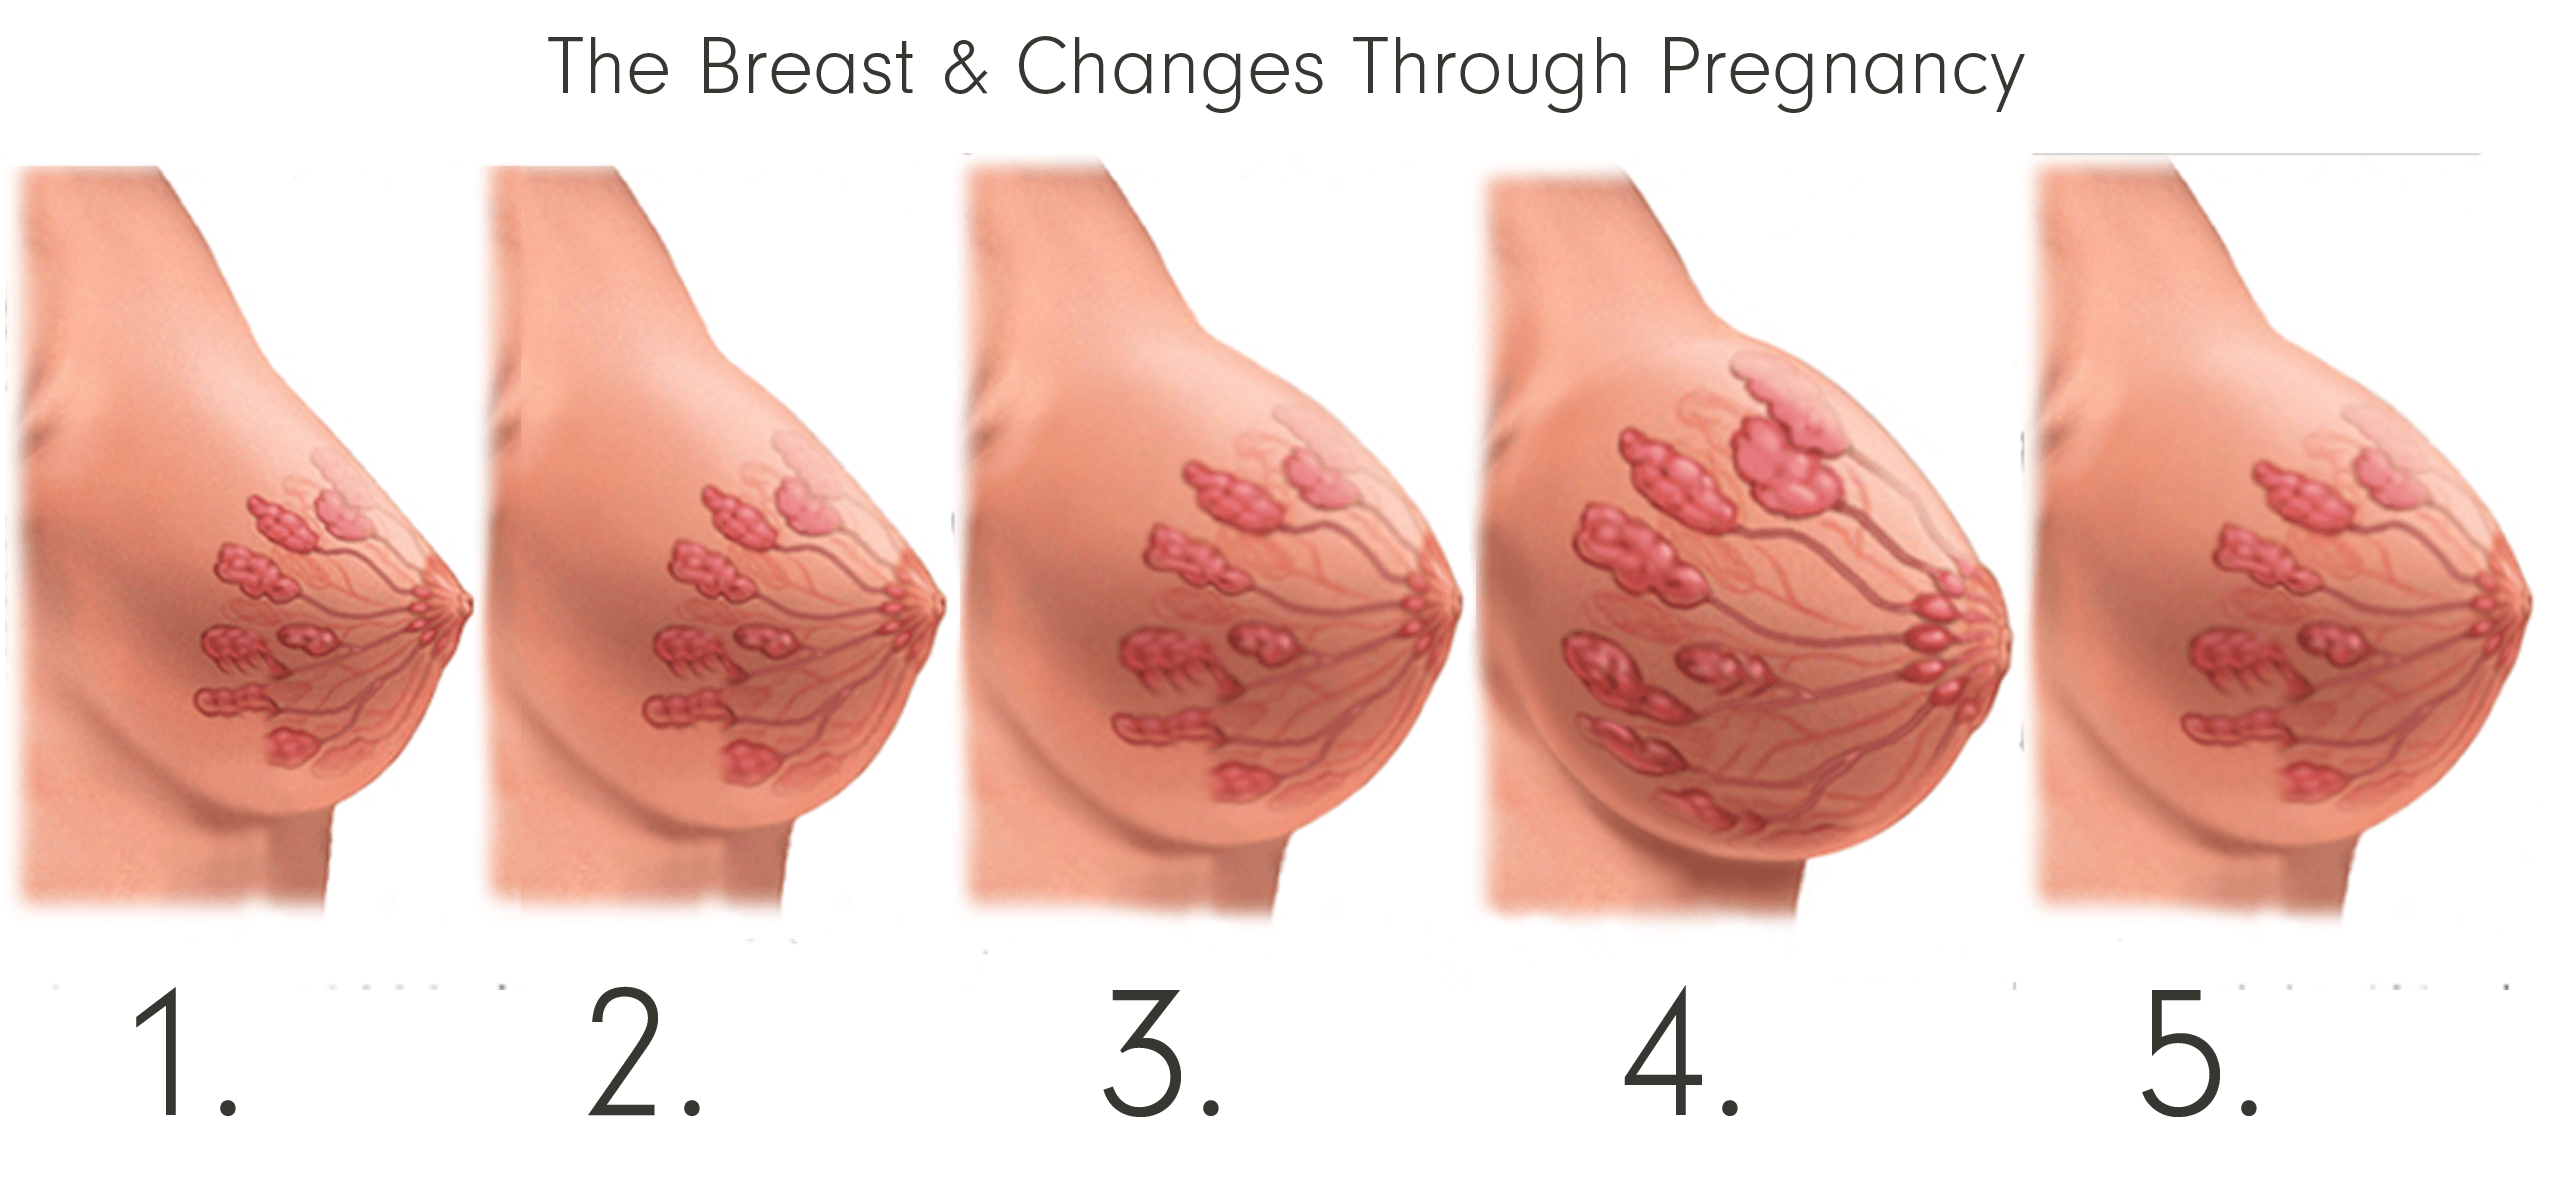 The Breast & Changes Through Pregnancy